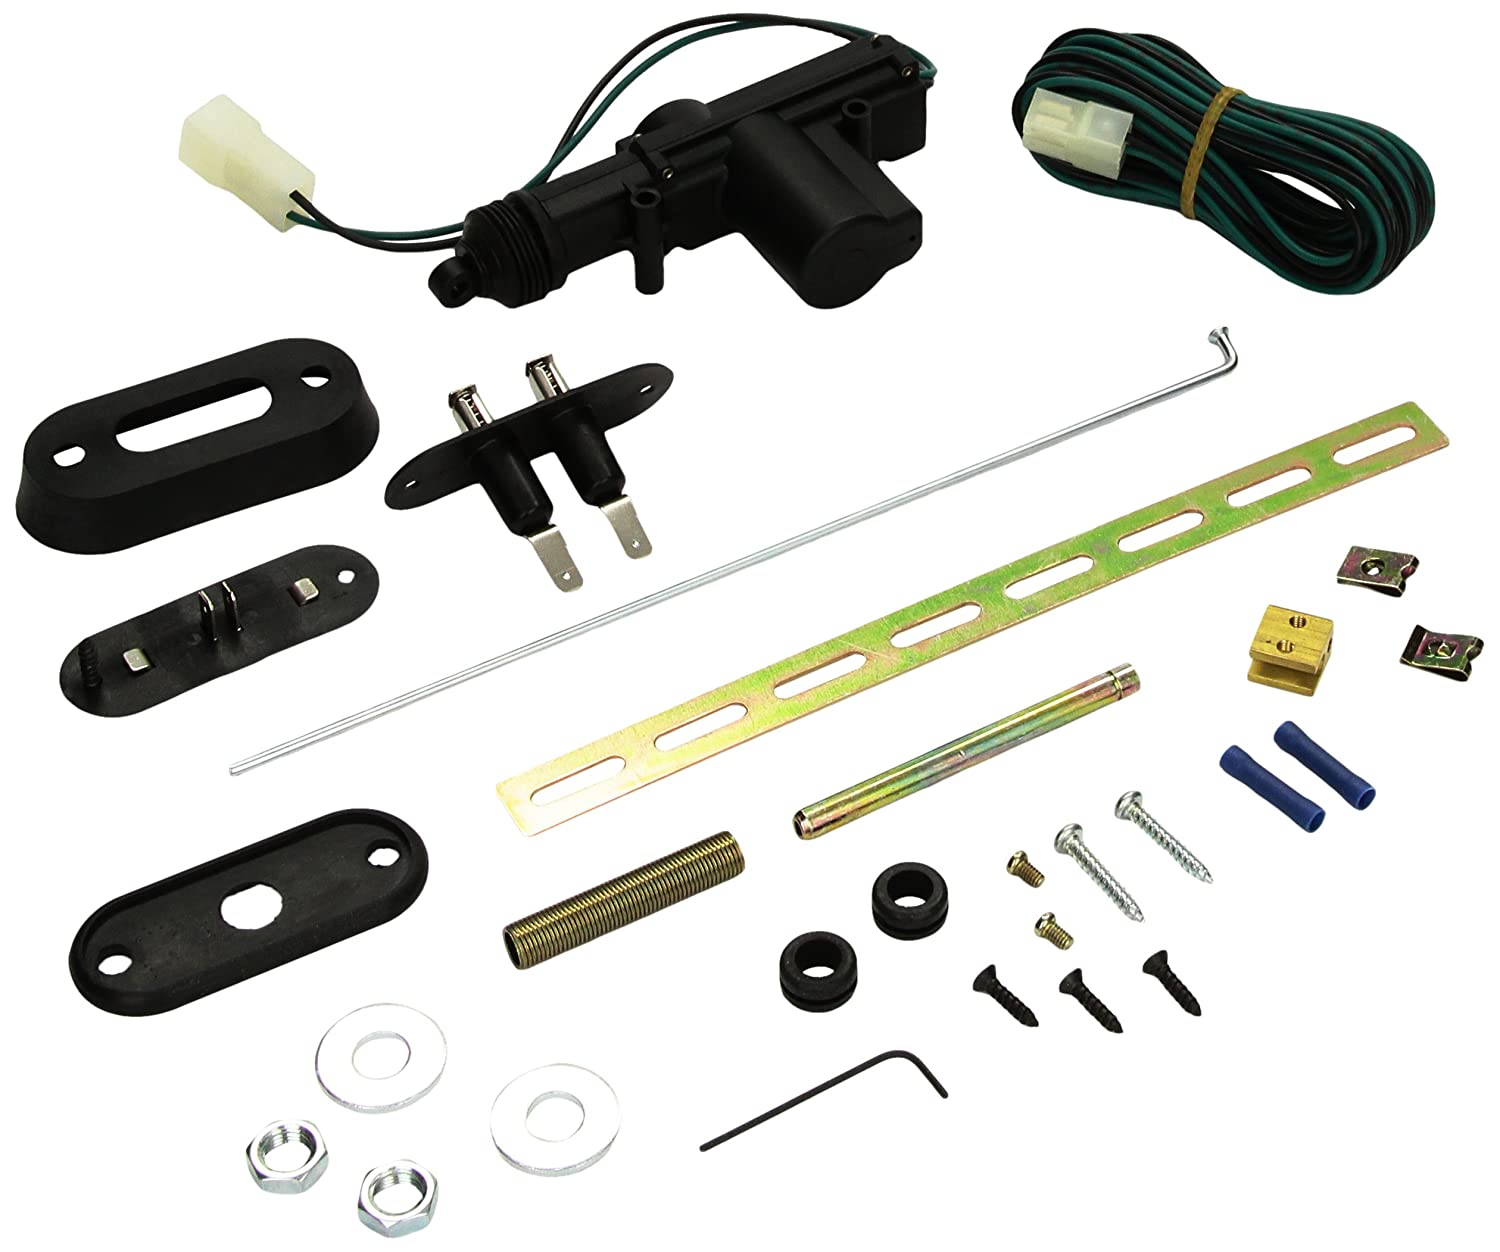 185 Central Locking System Extension Kit for Sliding Doors in.pro.